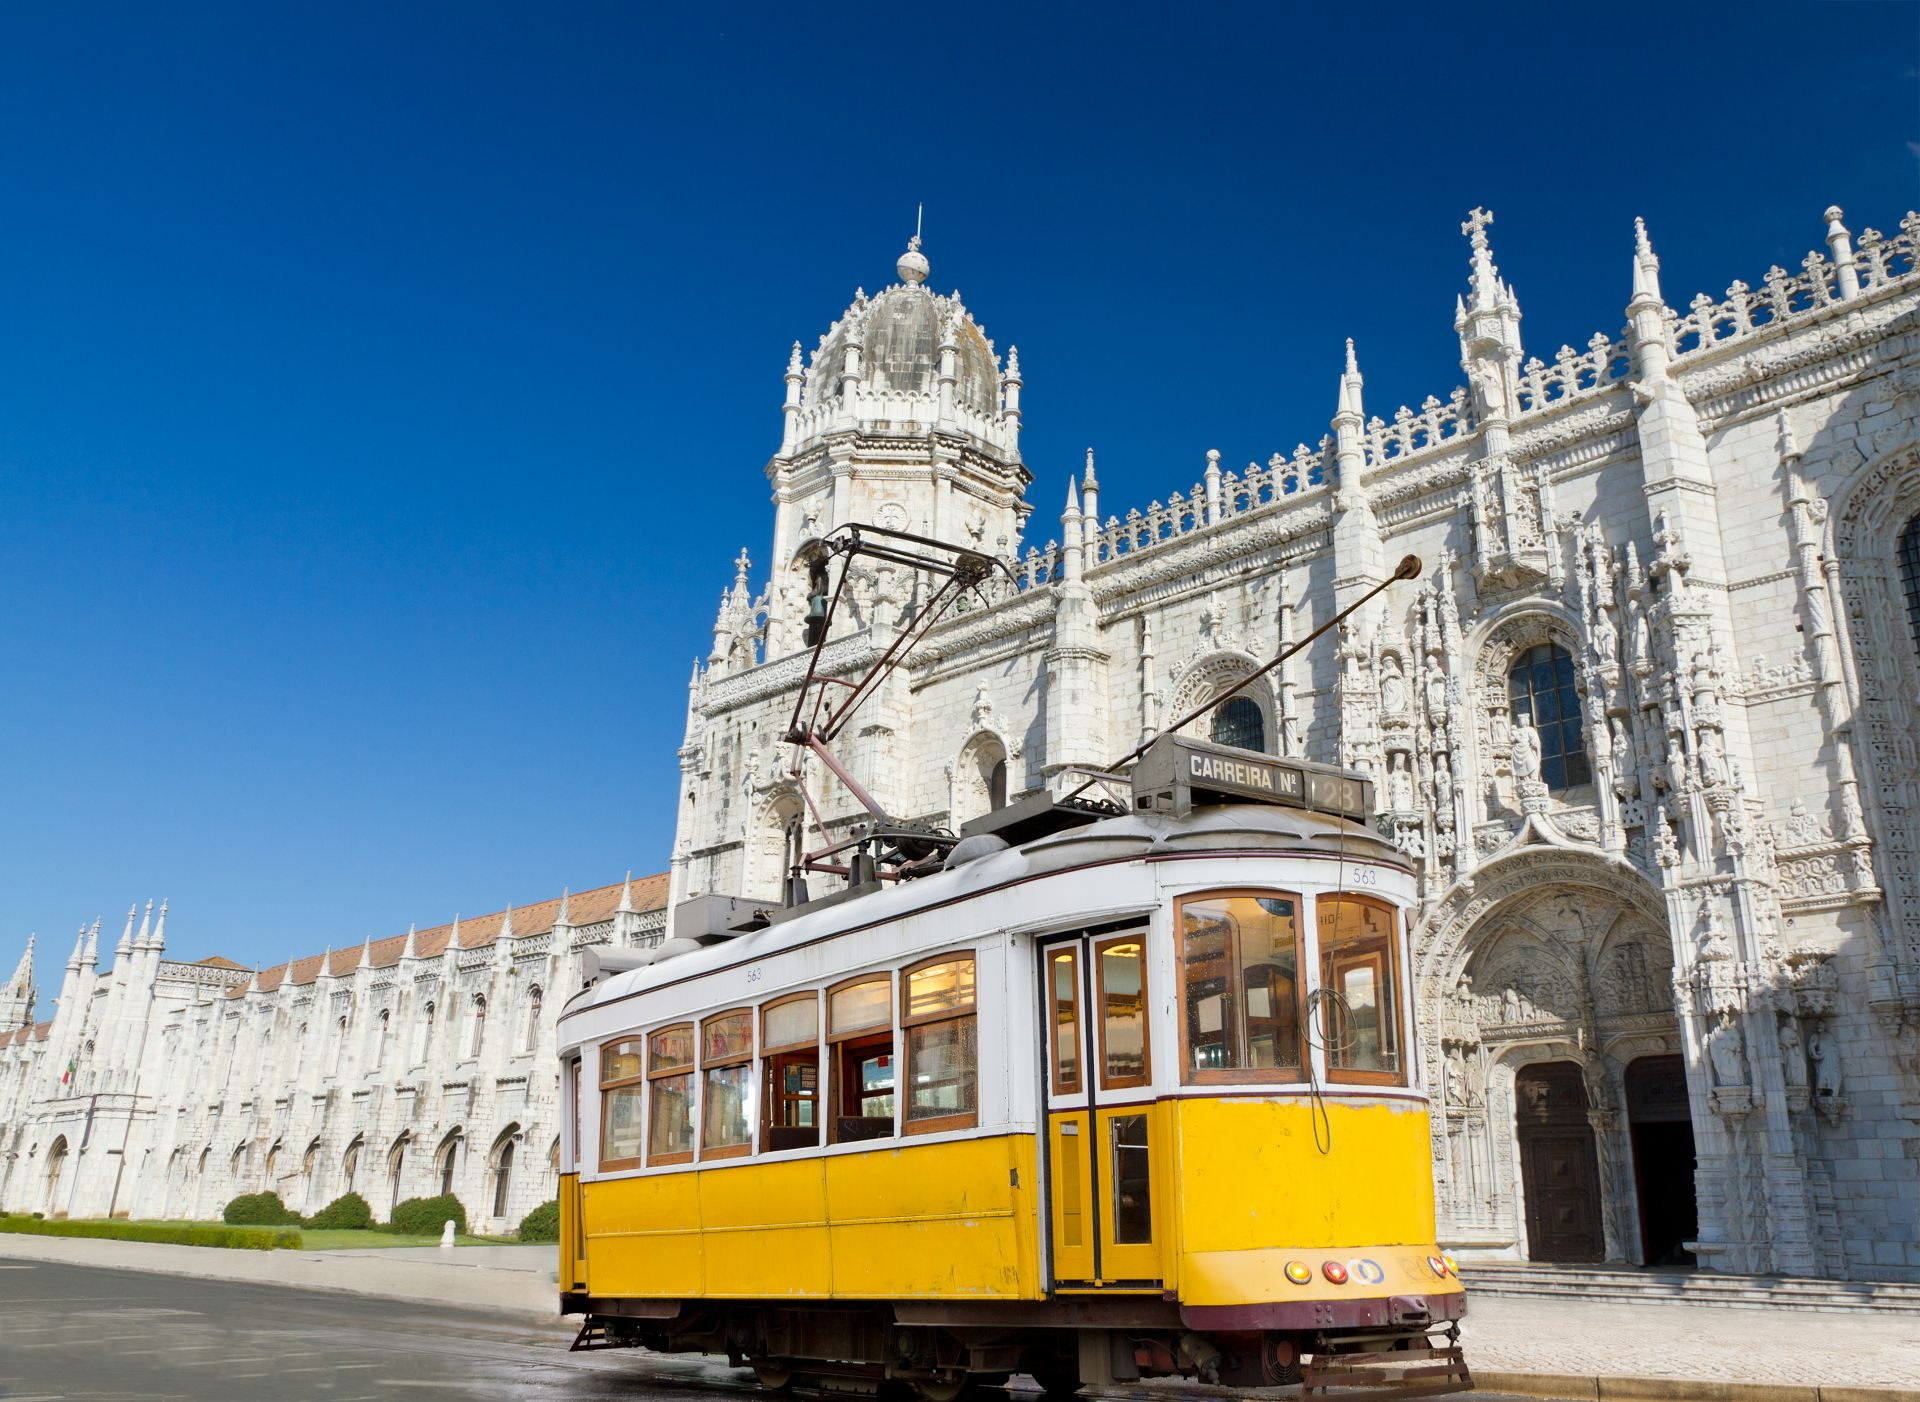 90 Percent of Portugal Golden Visas Issued in Q1 2021 Are Through Property Investment: Reviewed by Get Golden Visa